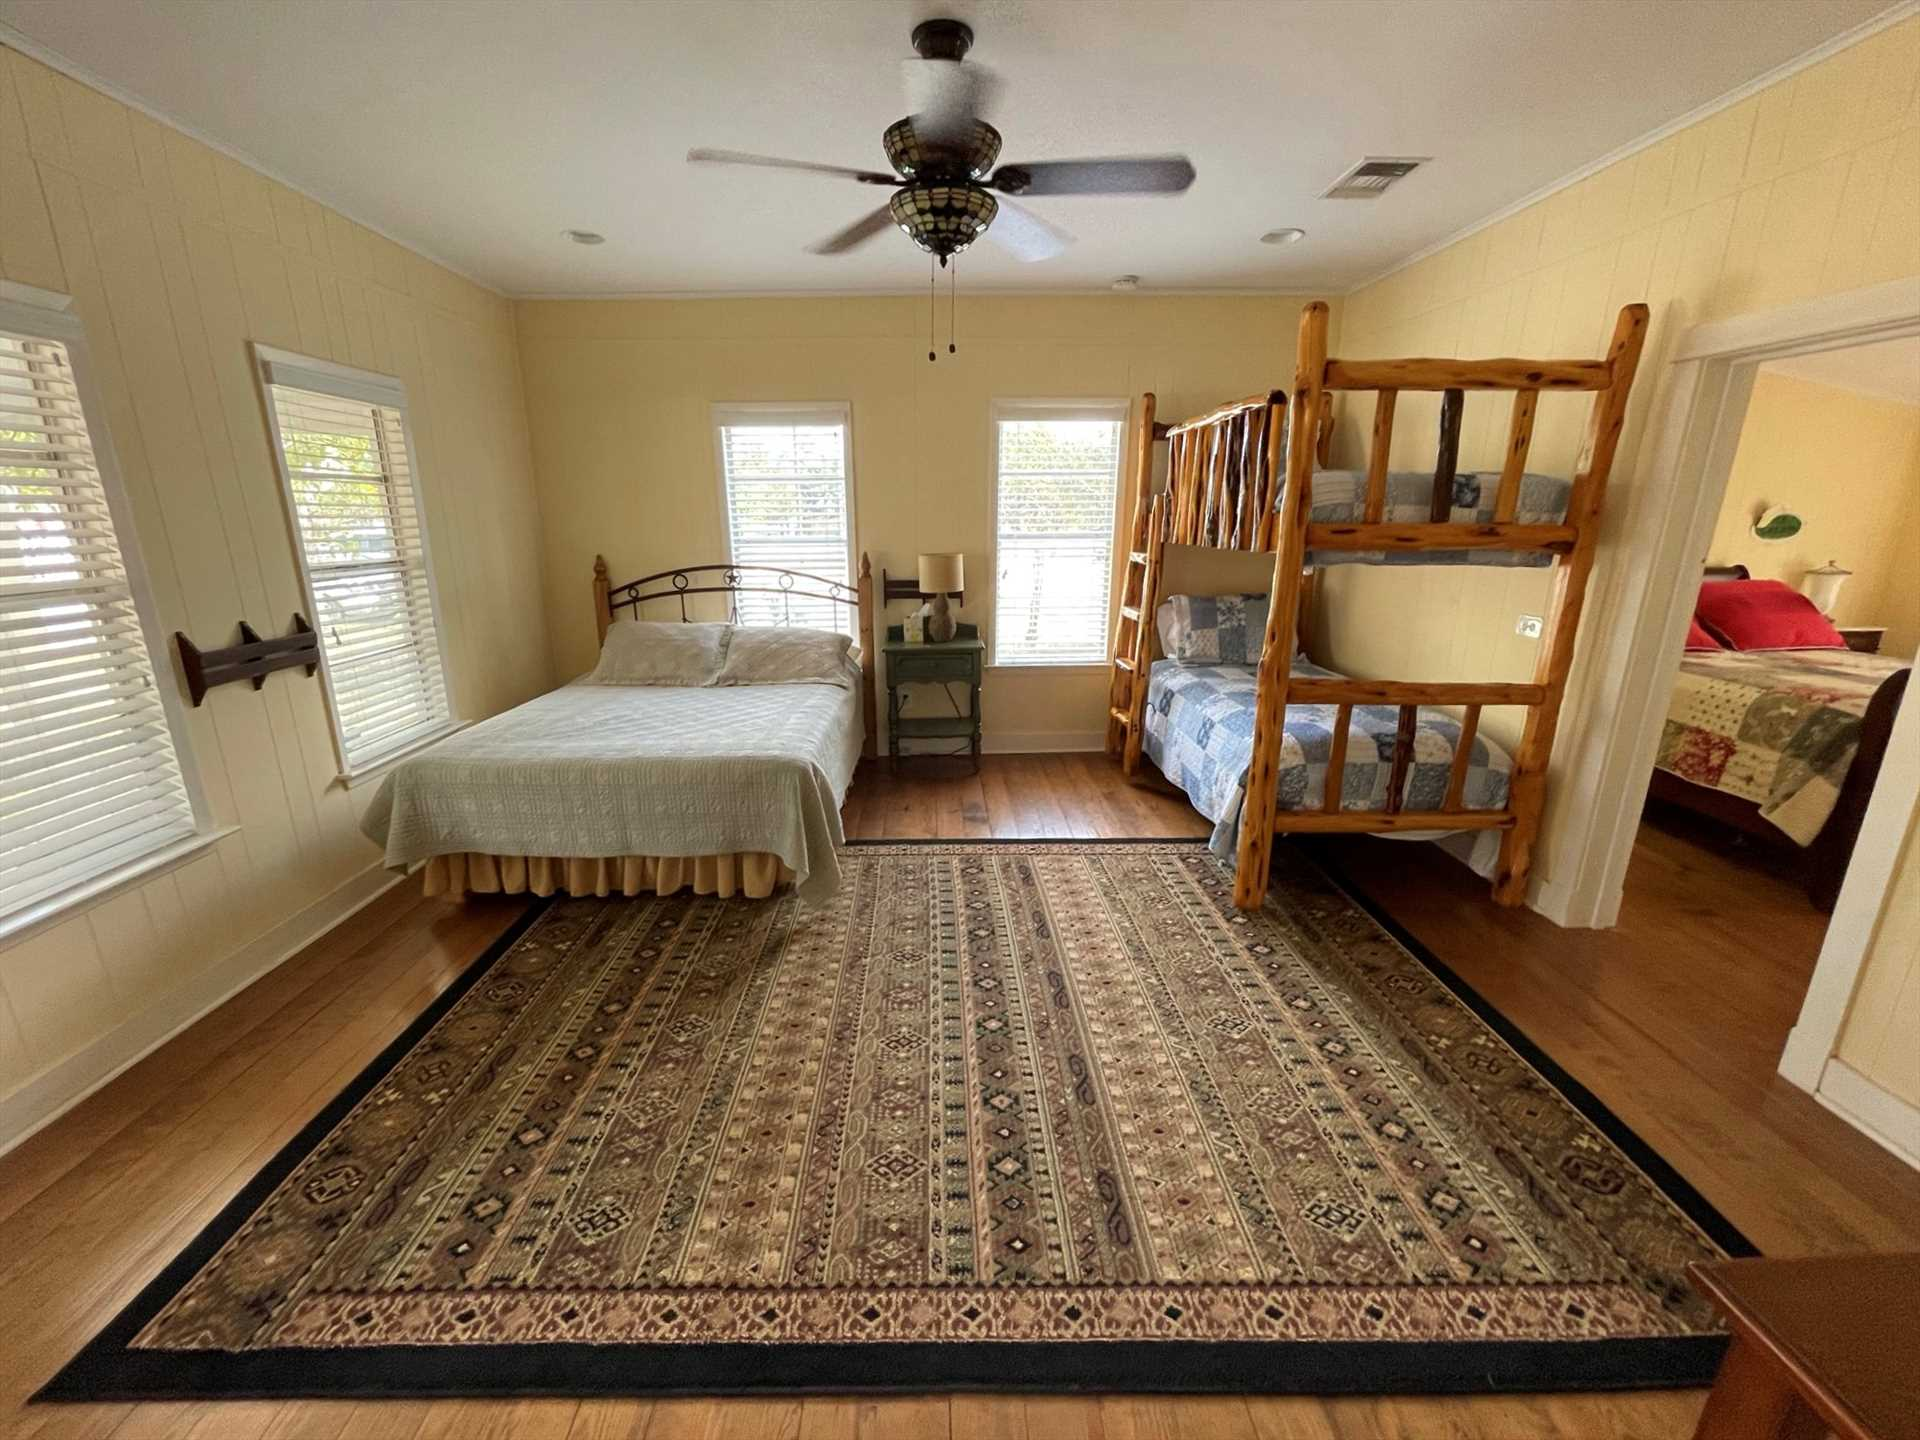 Soft and warm queen and twin bunk beds comfortably sleep up to four guests in the second bedroom. Clean linens are included, too!